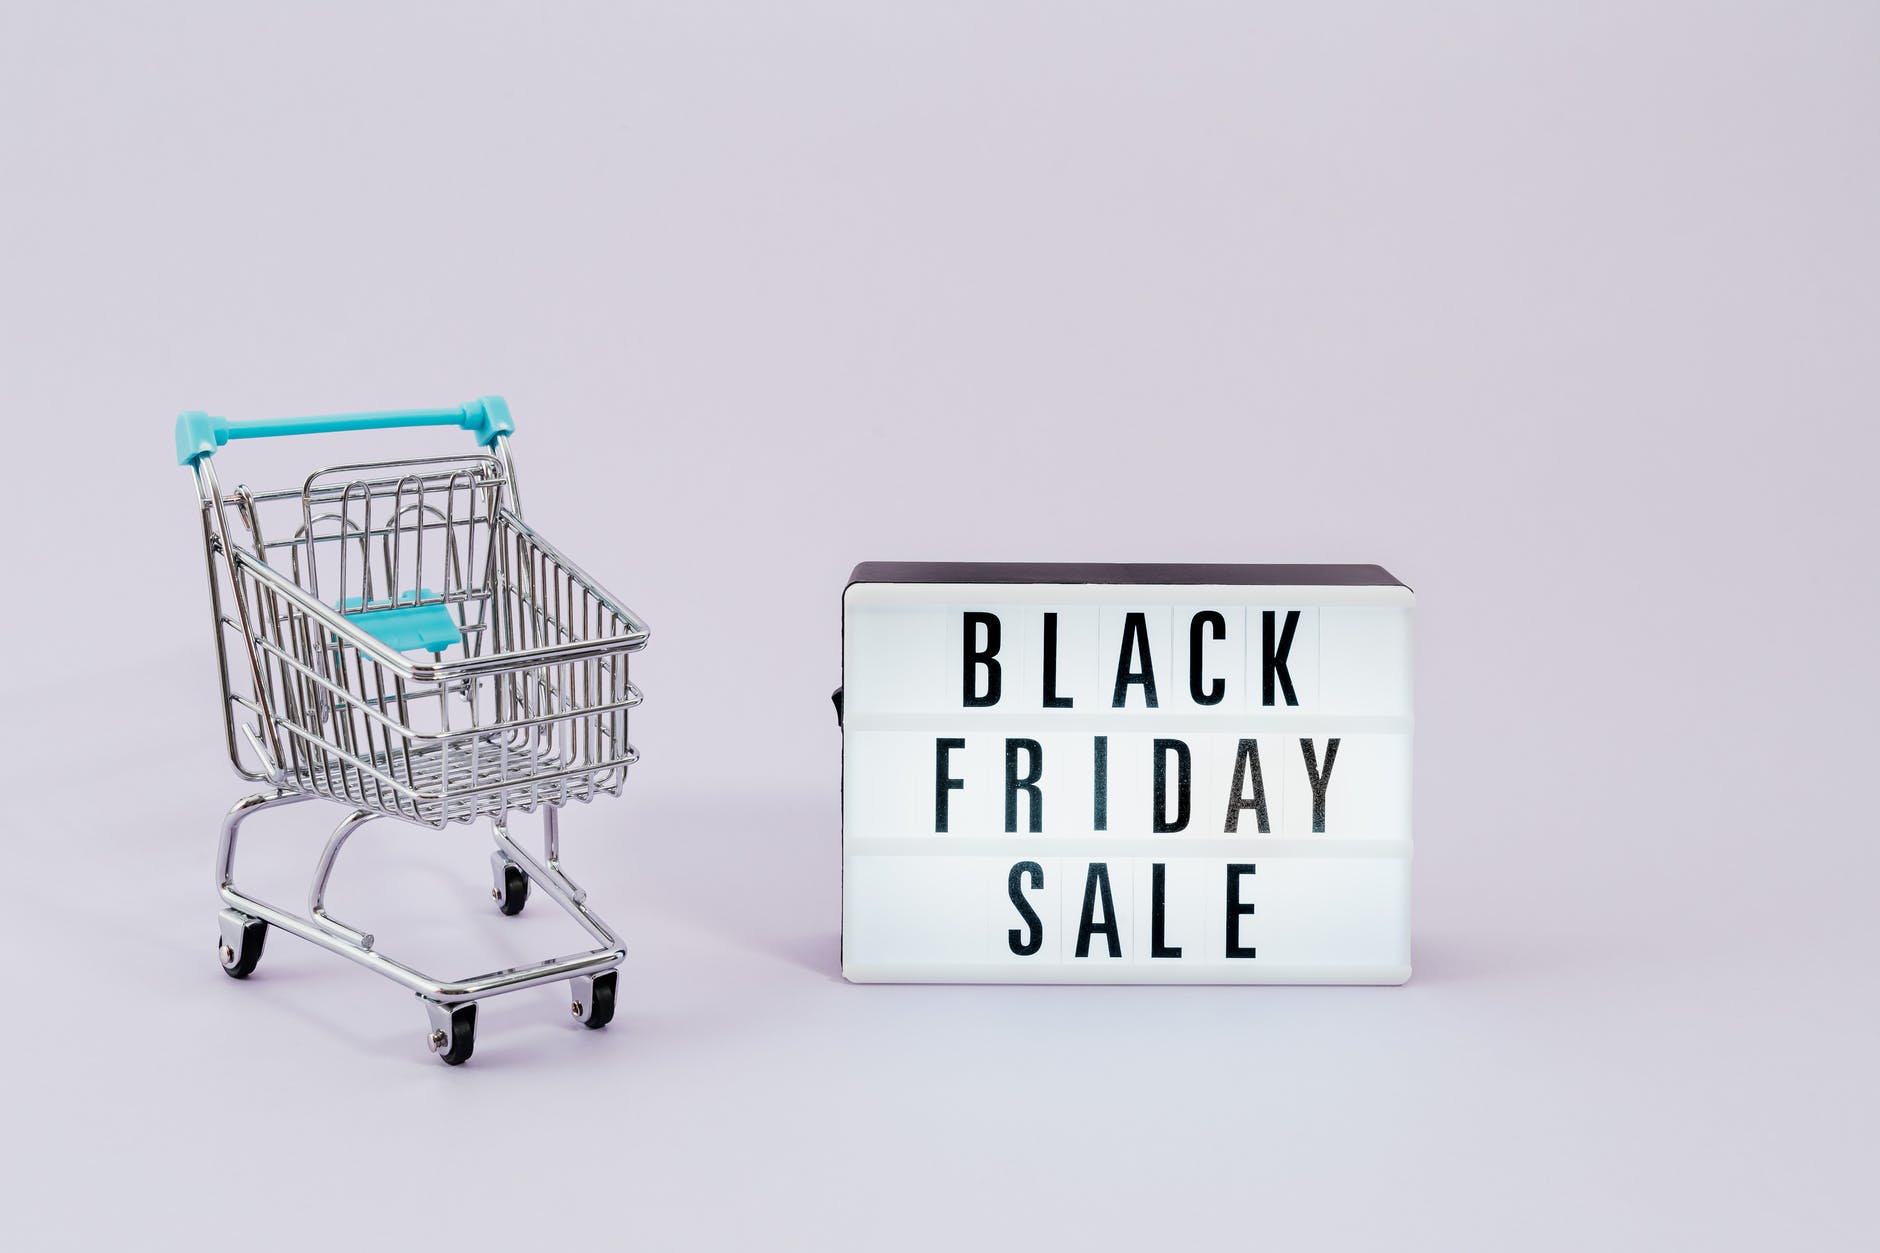 shopping cart next to a black friday sale sign